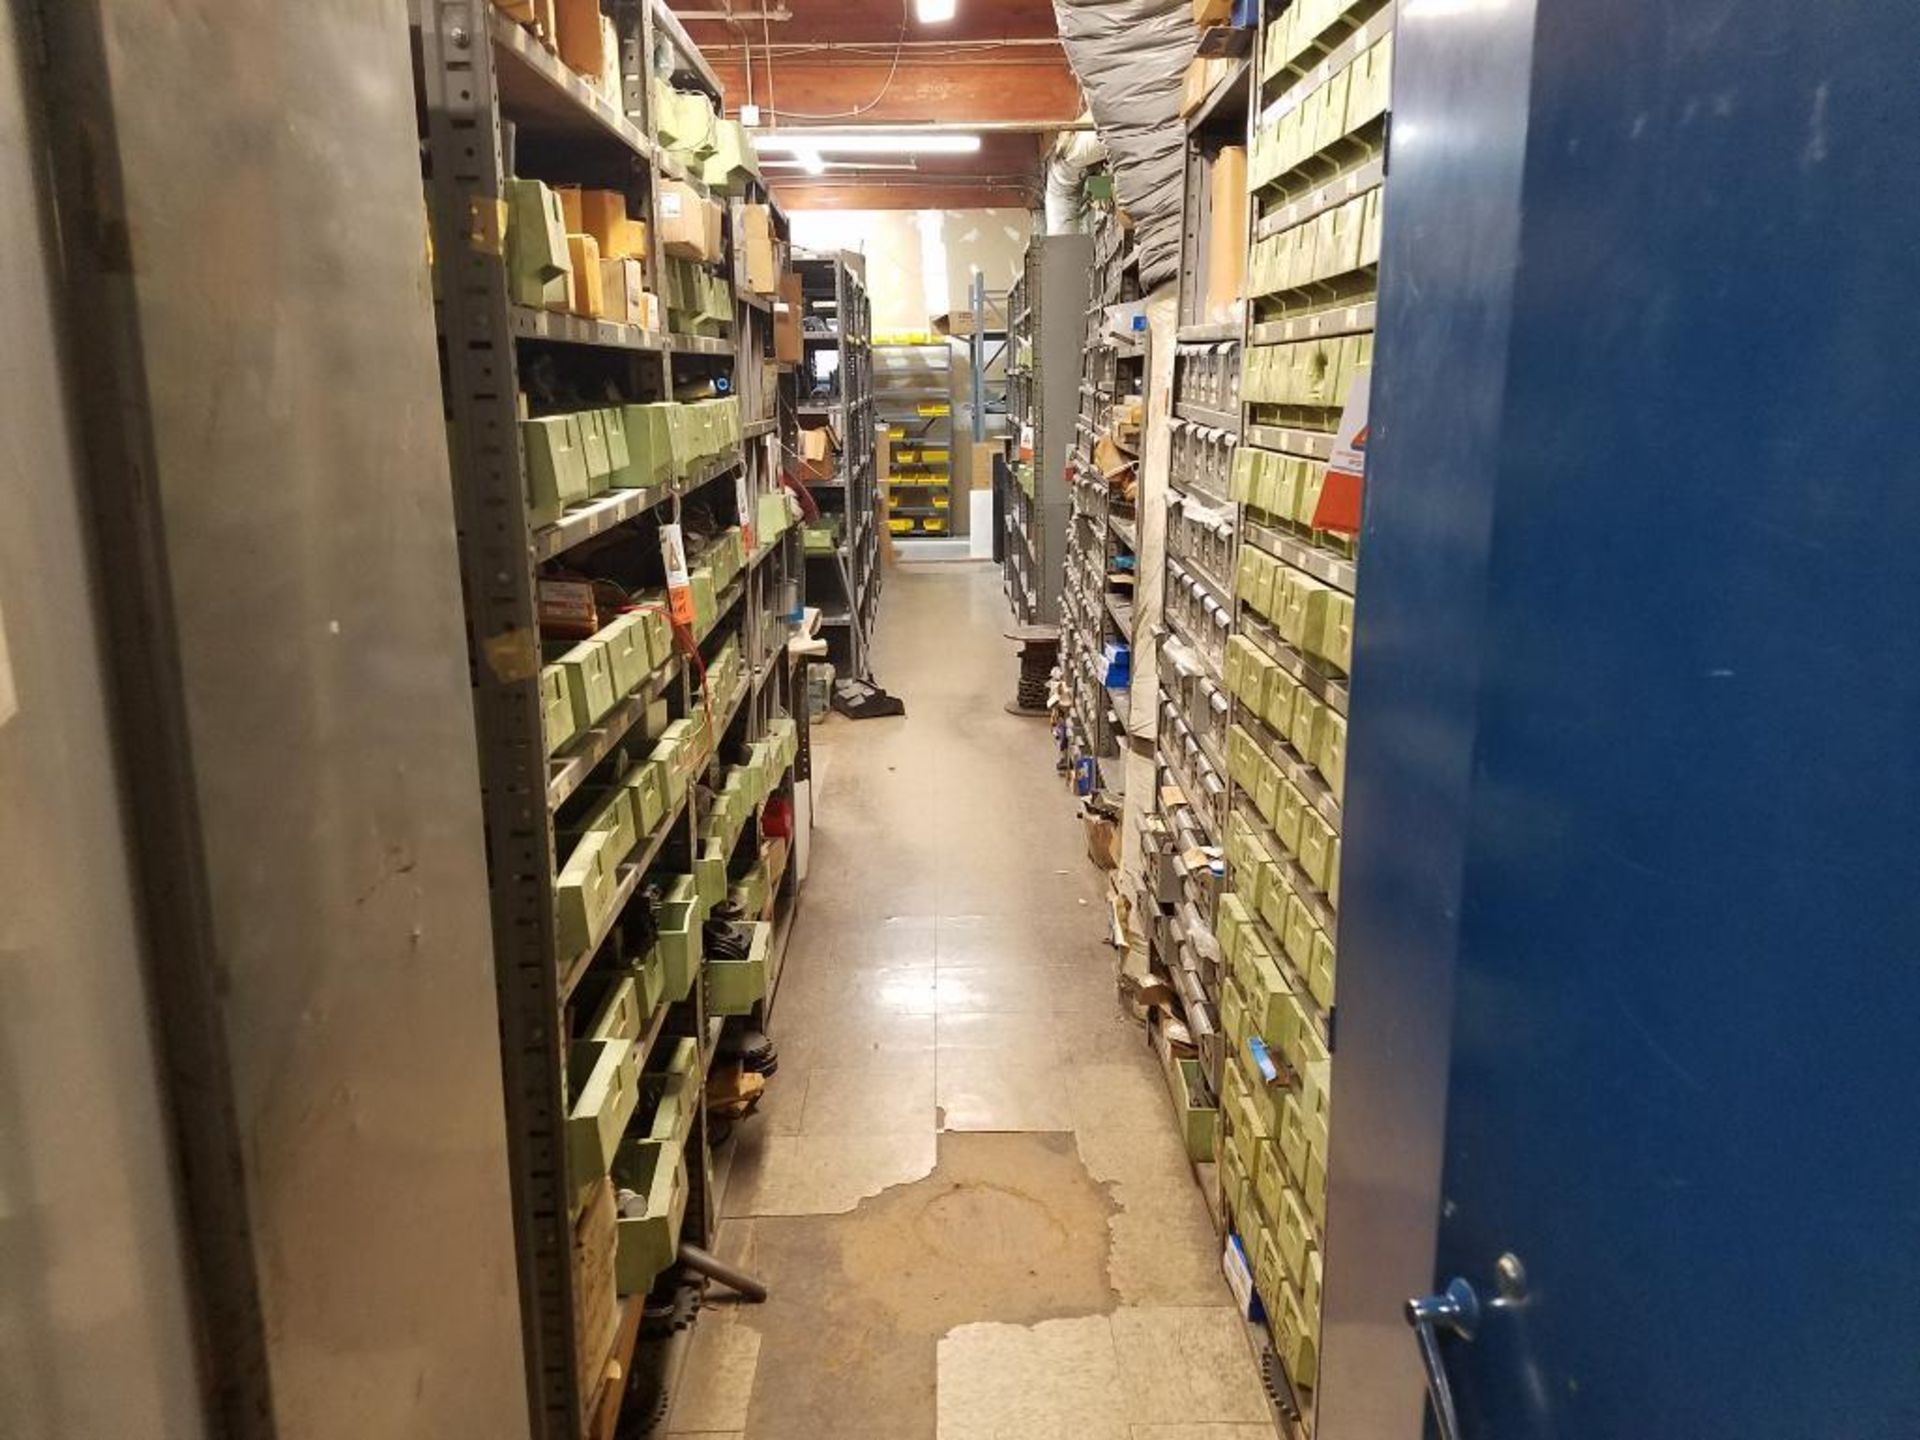 all shelving and storage units located in MRO room - Image 2 of 11